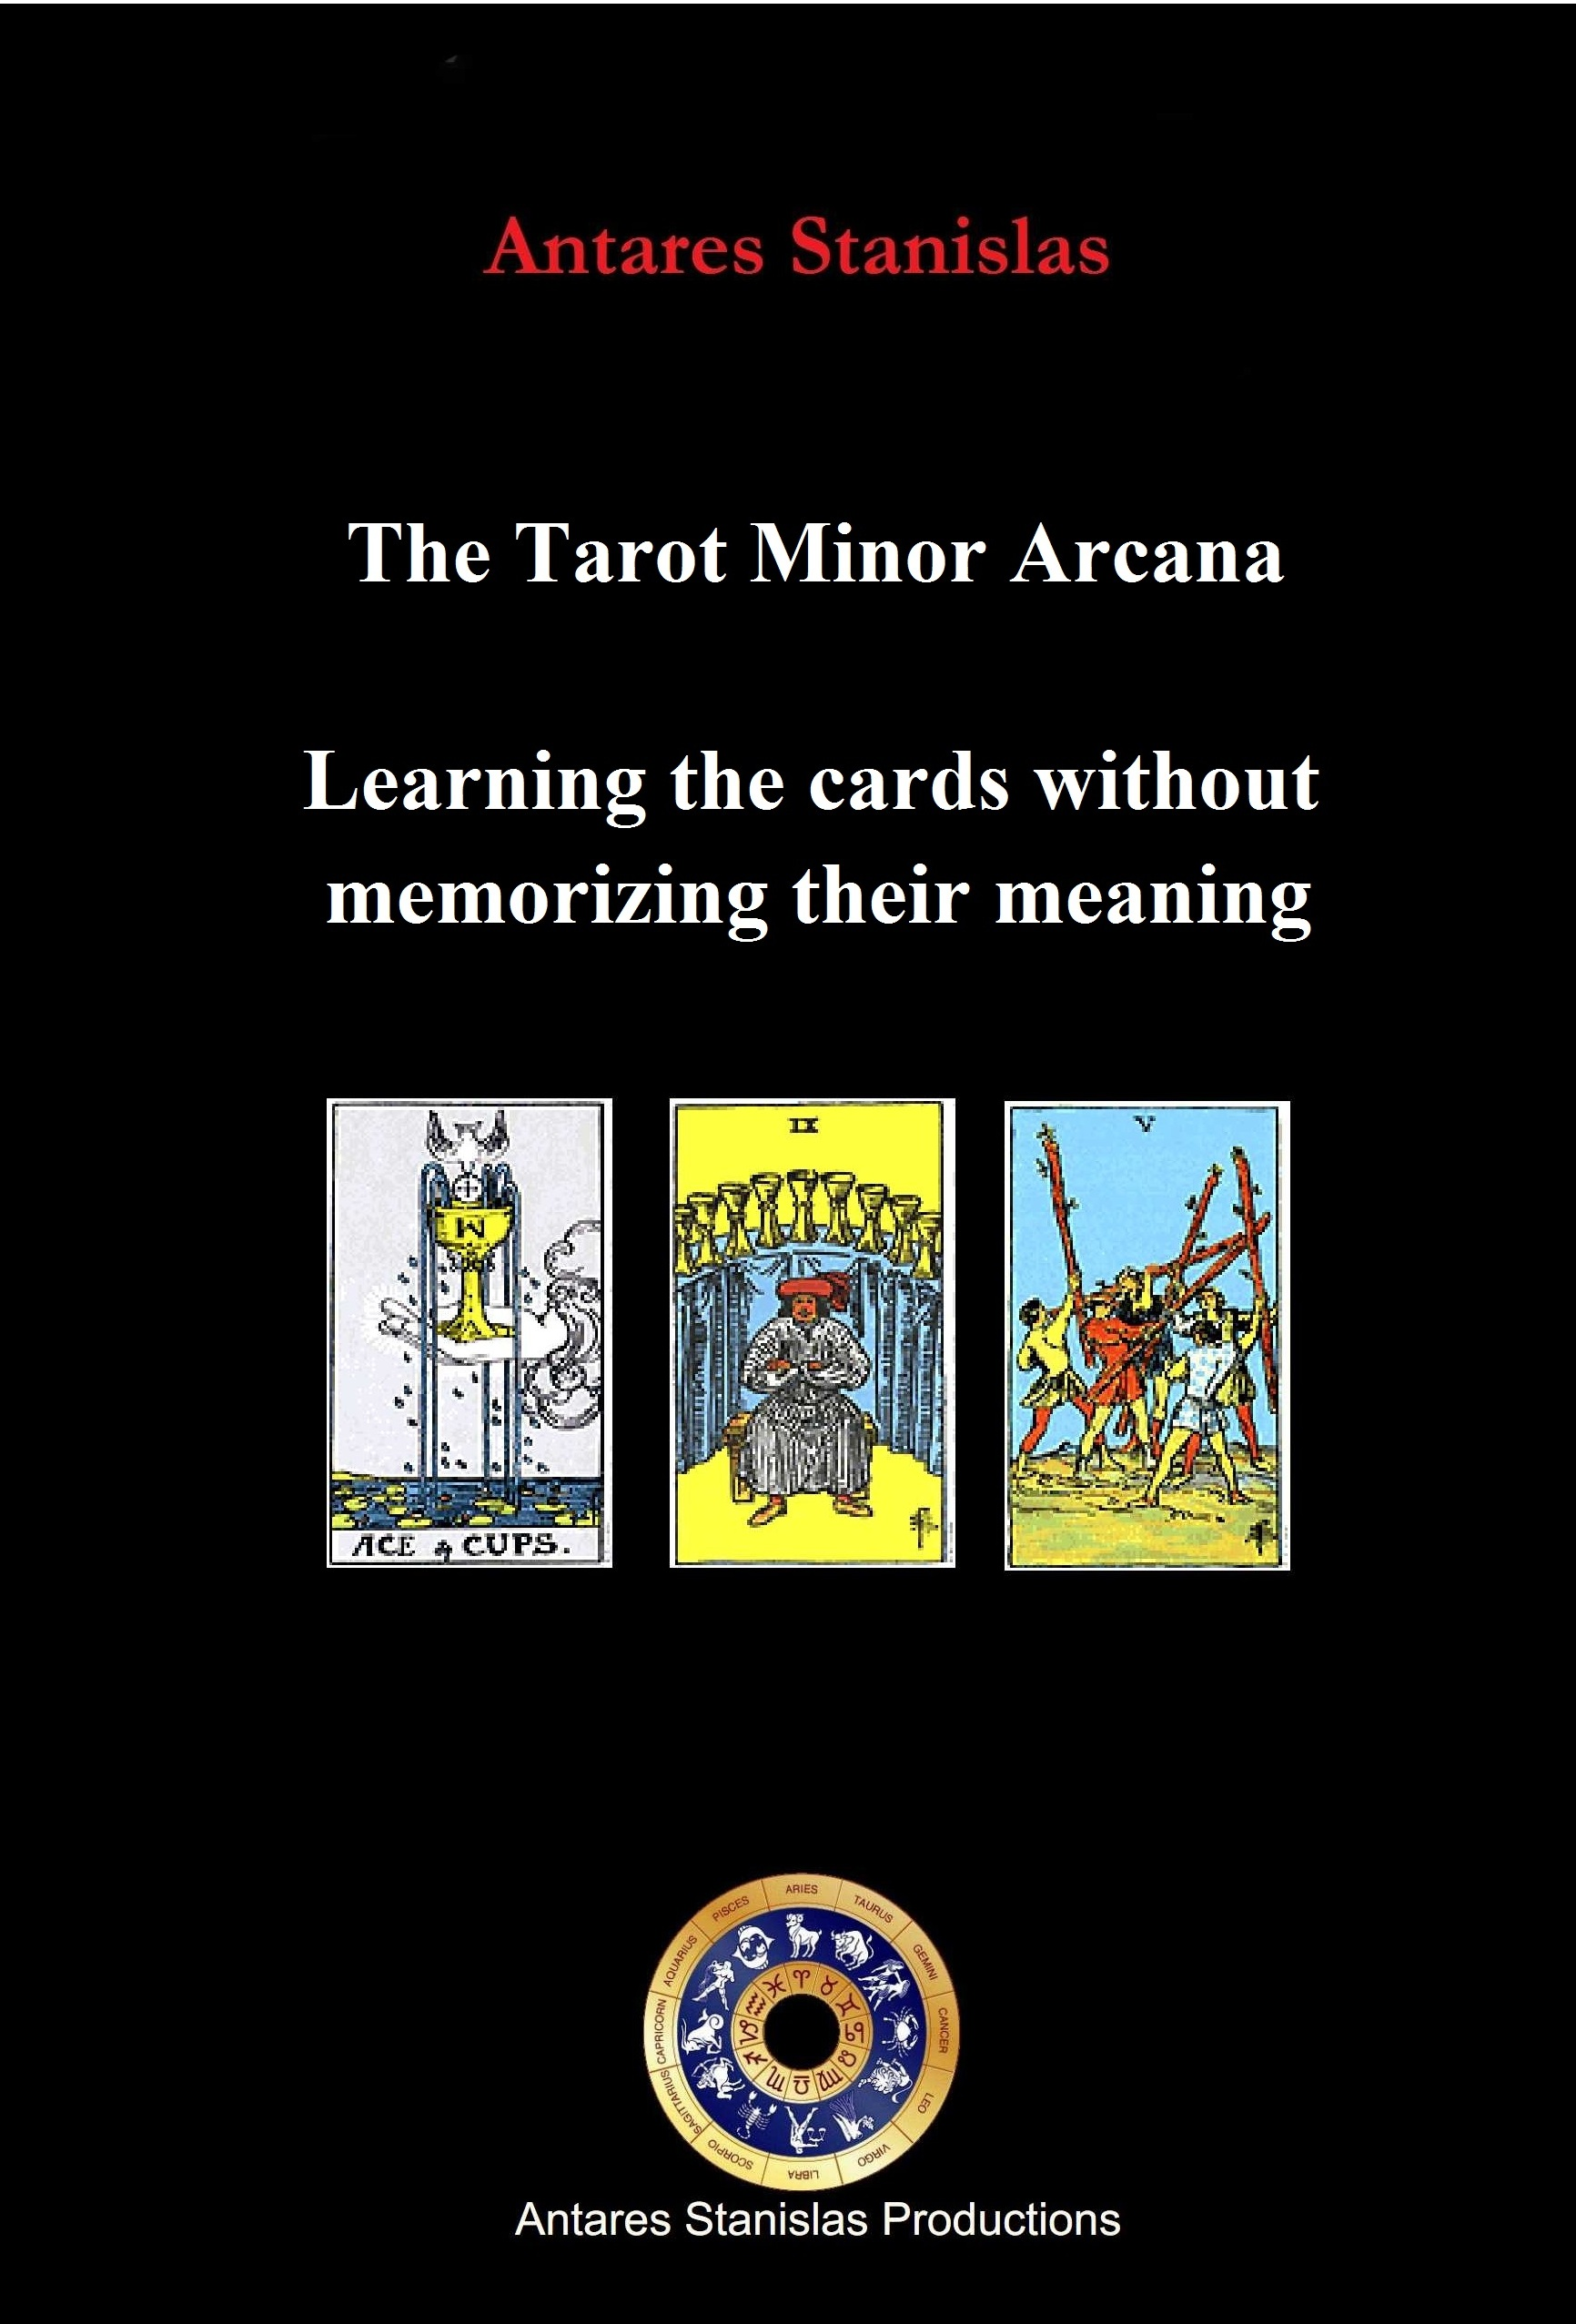 The tarot minor arcana learning the cards without memorizing their meaning